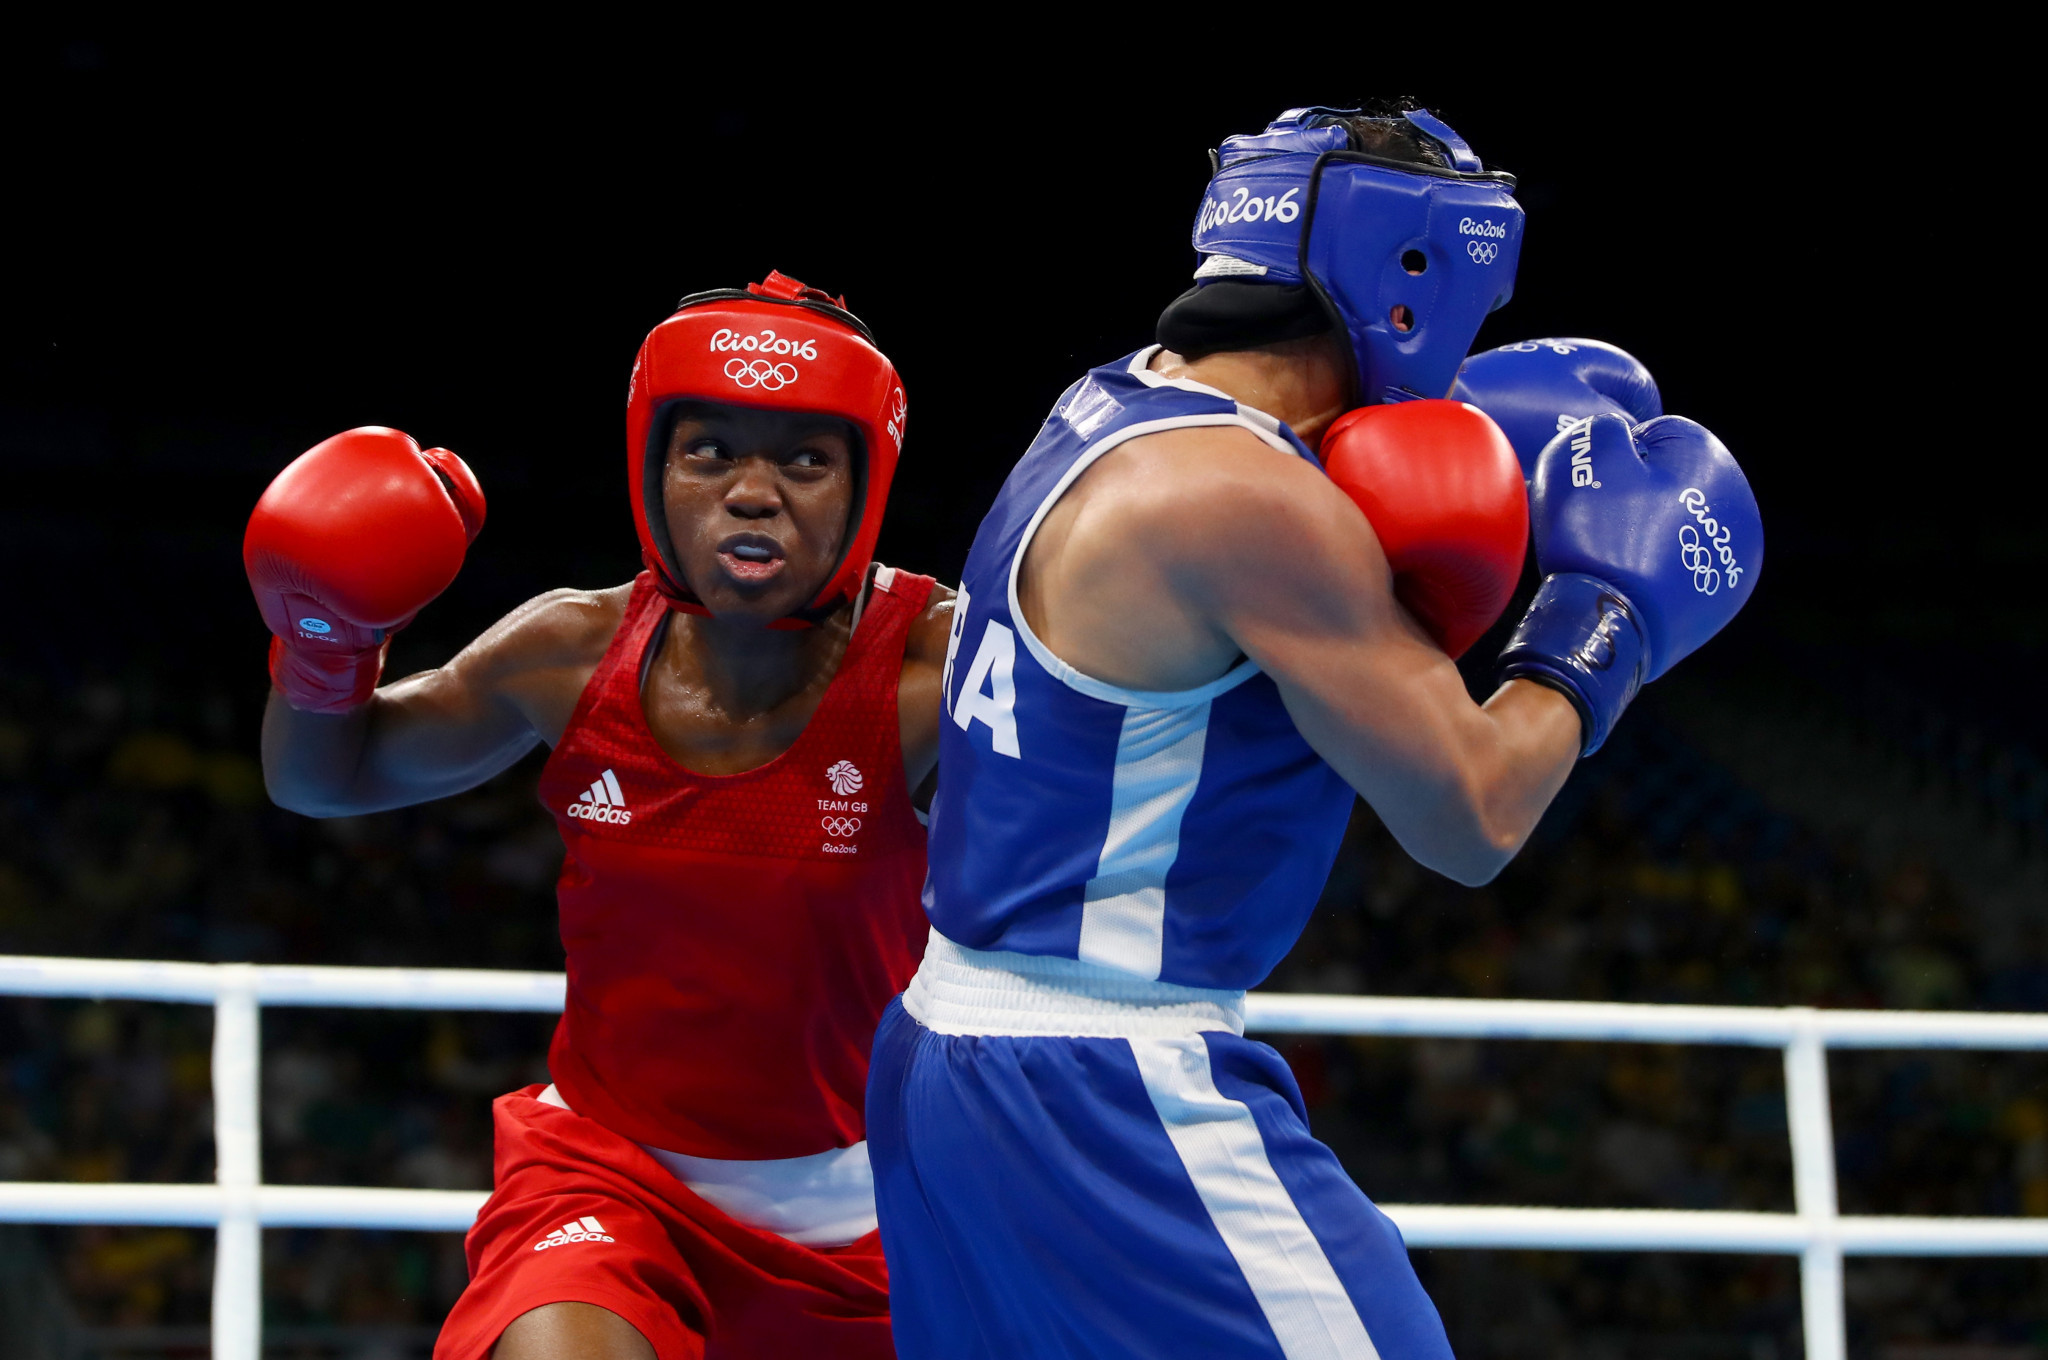 Olympic champion Nicola Adams was among Britain's three medal winners at Rio 2016 ©Getty Images